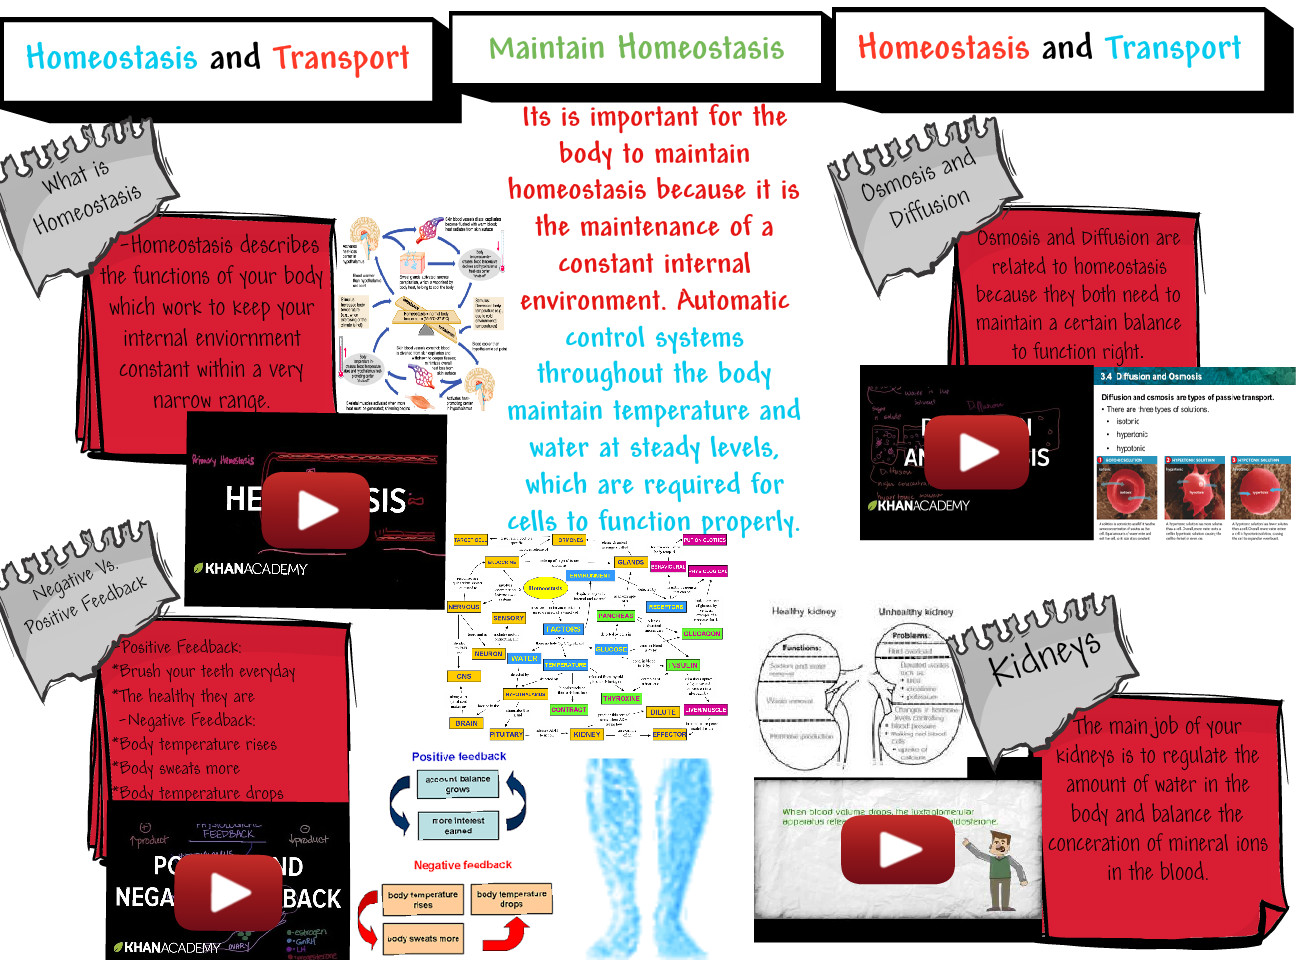 By Steven-Homeostasis And Transport